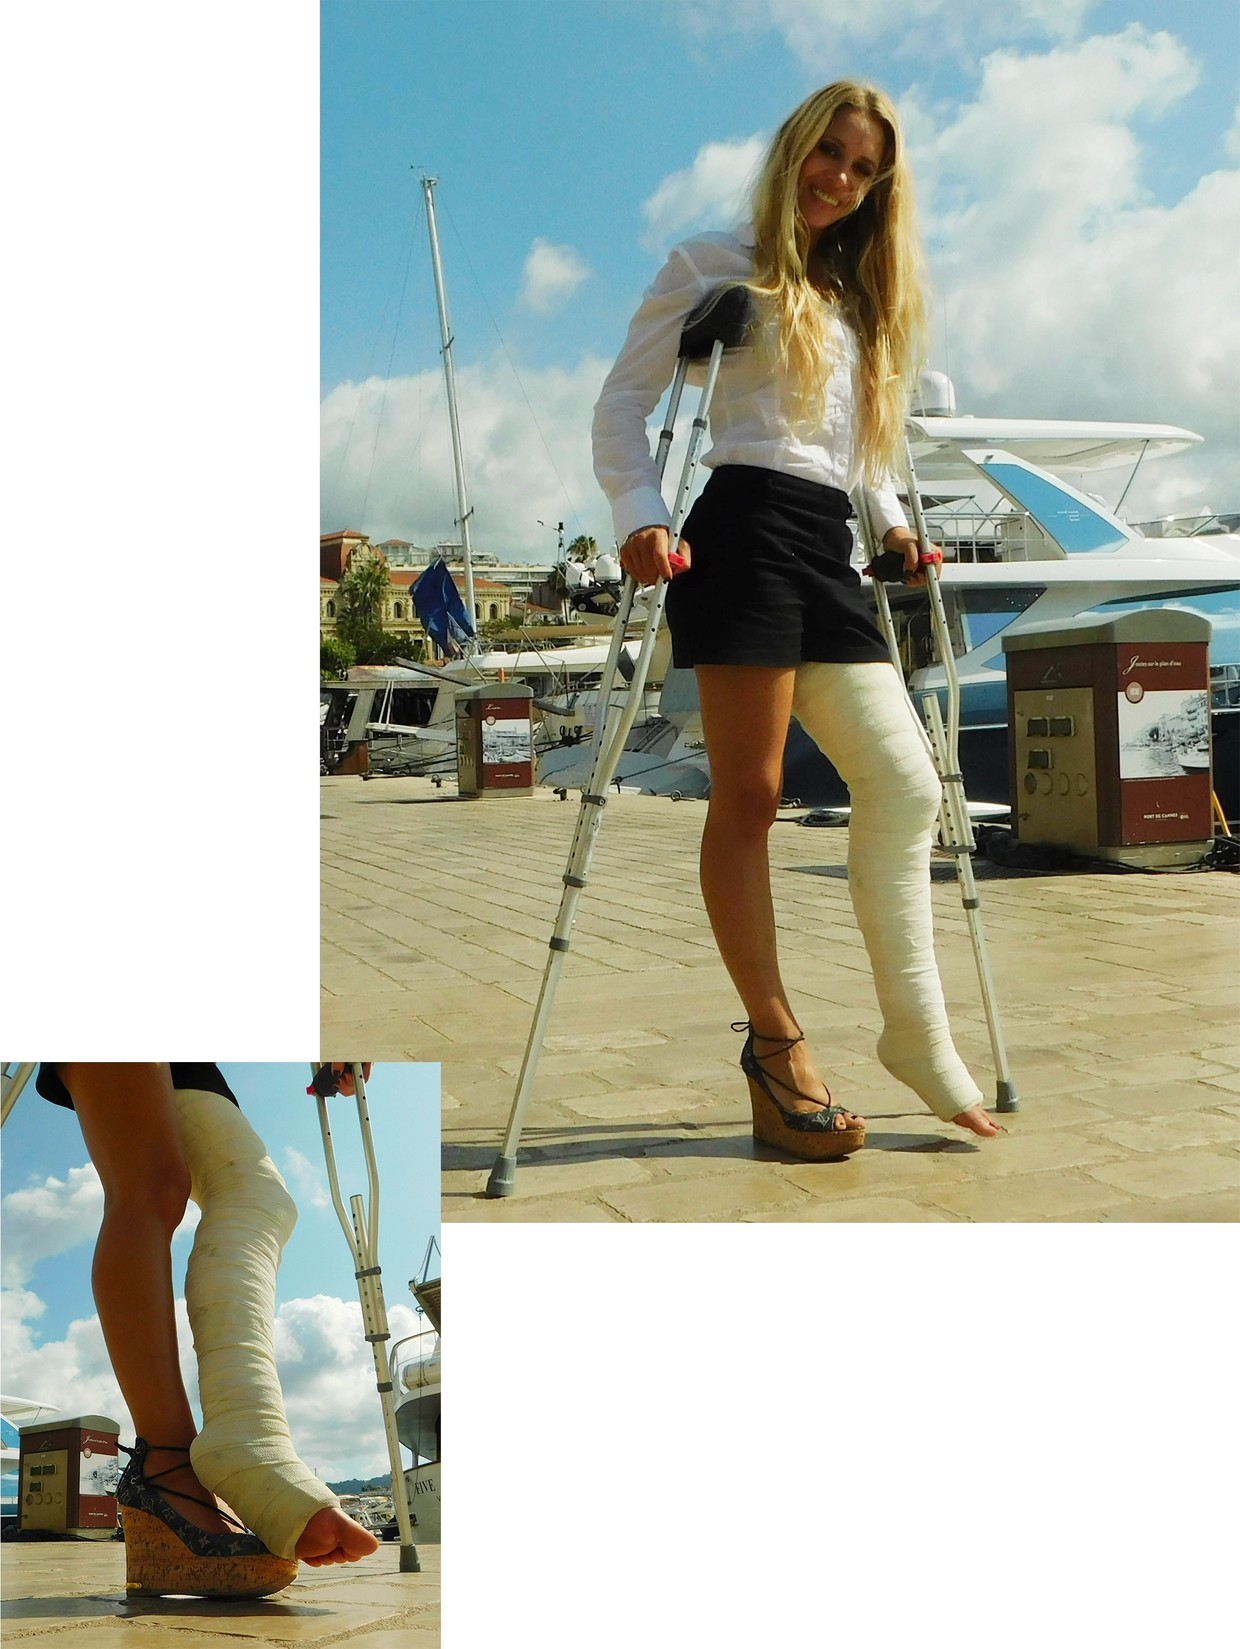 Castlinda LLC - Jolie Modling - Linda crutching in the city of Cannes - with a massive plaster longleg cast on her left leg and a sexy wedge sandal on her right foot.